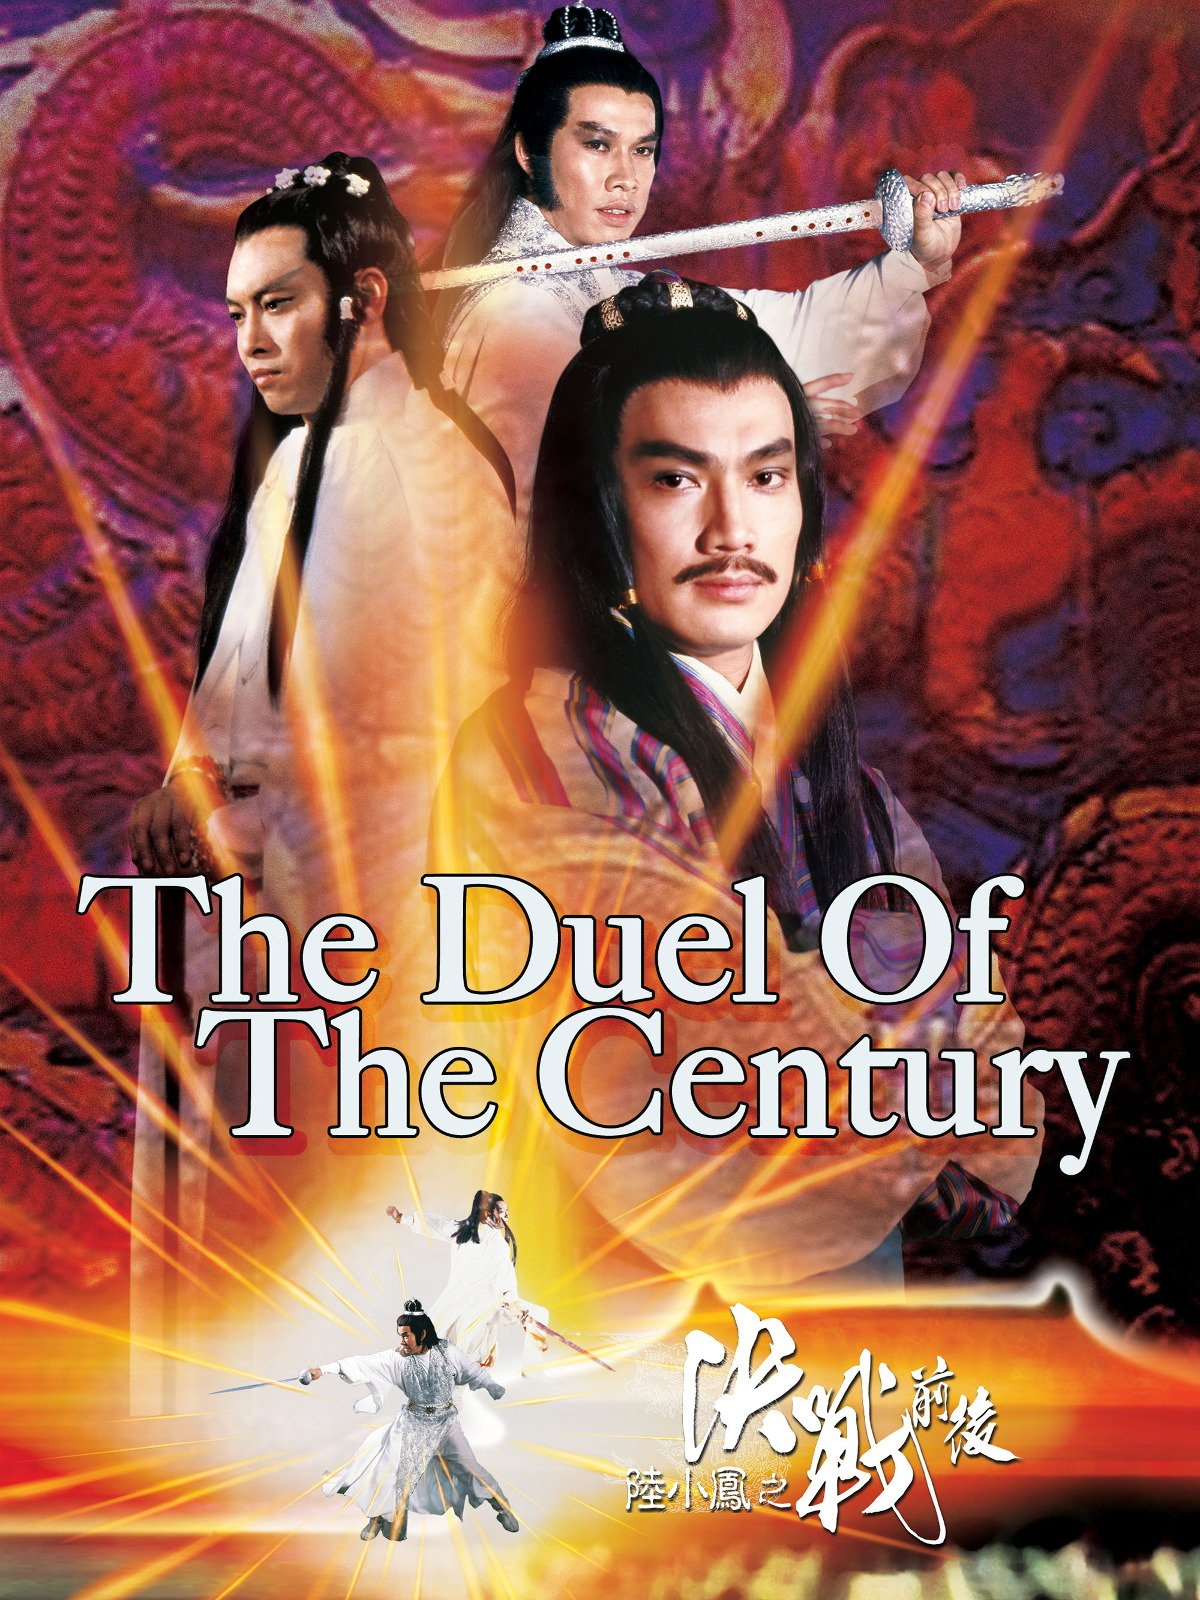 Watch The Duel of the Century | Prime Video